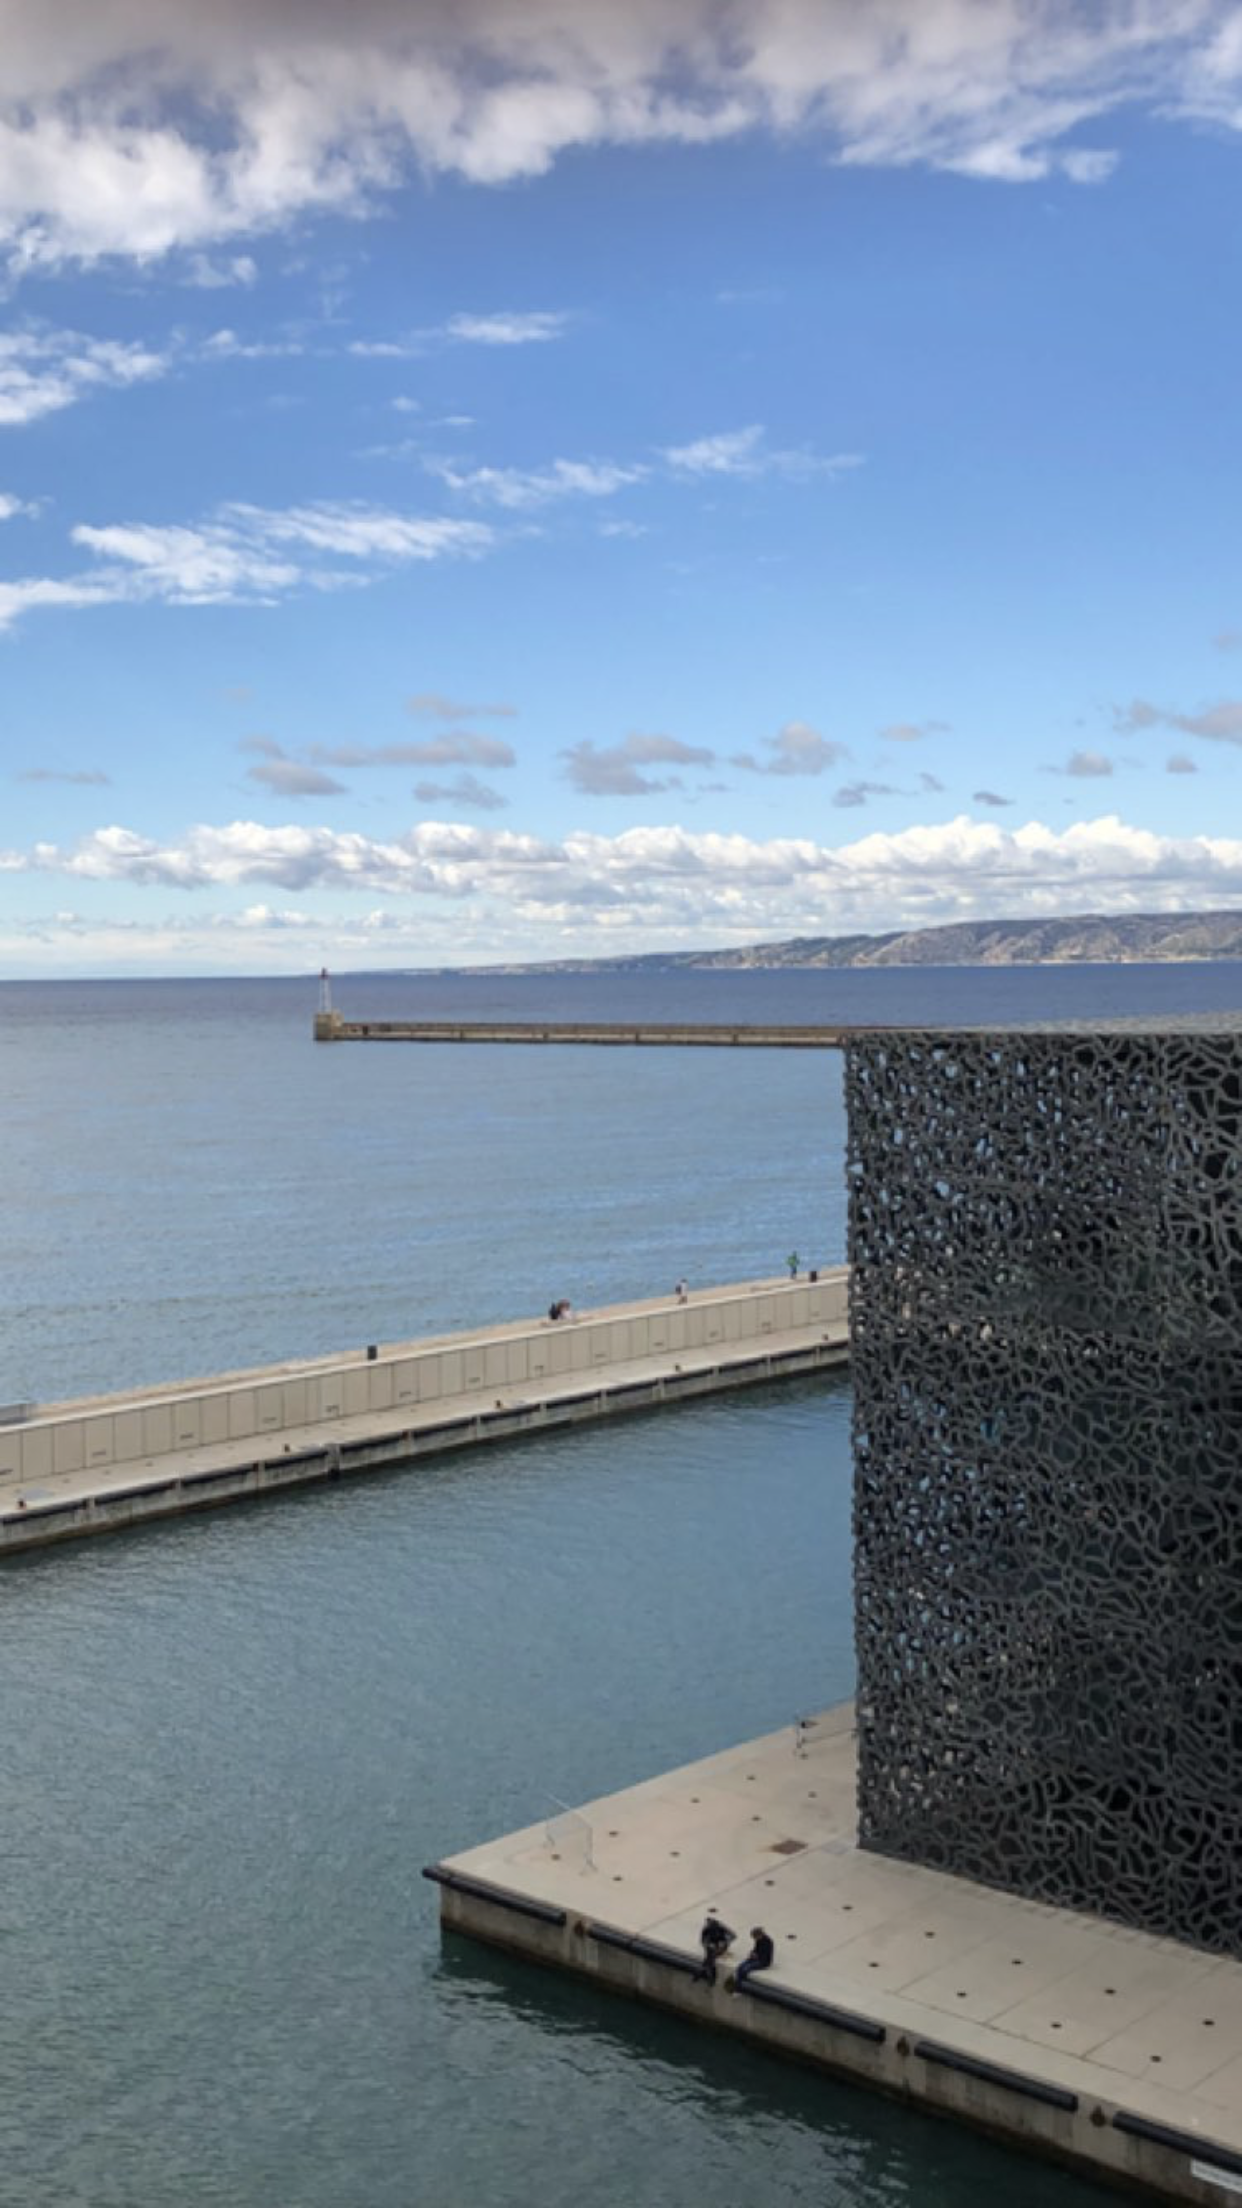 MUCEM things to do in marseille in 3 days